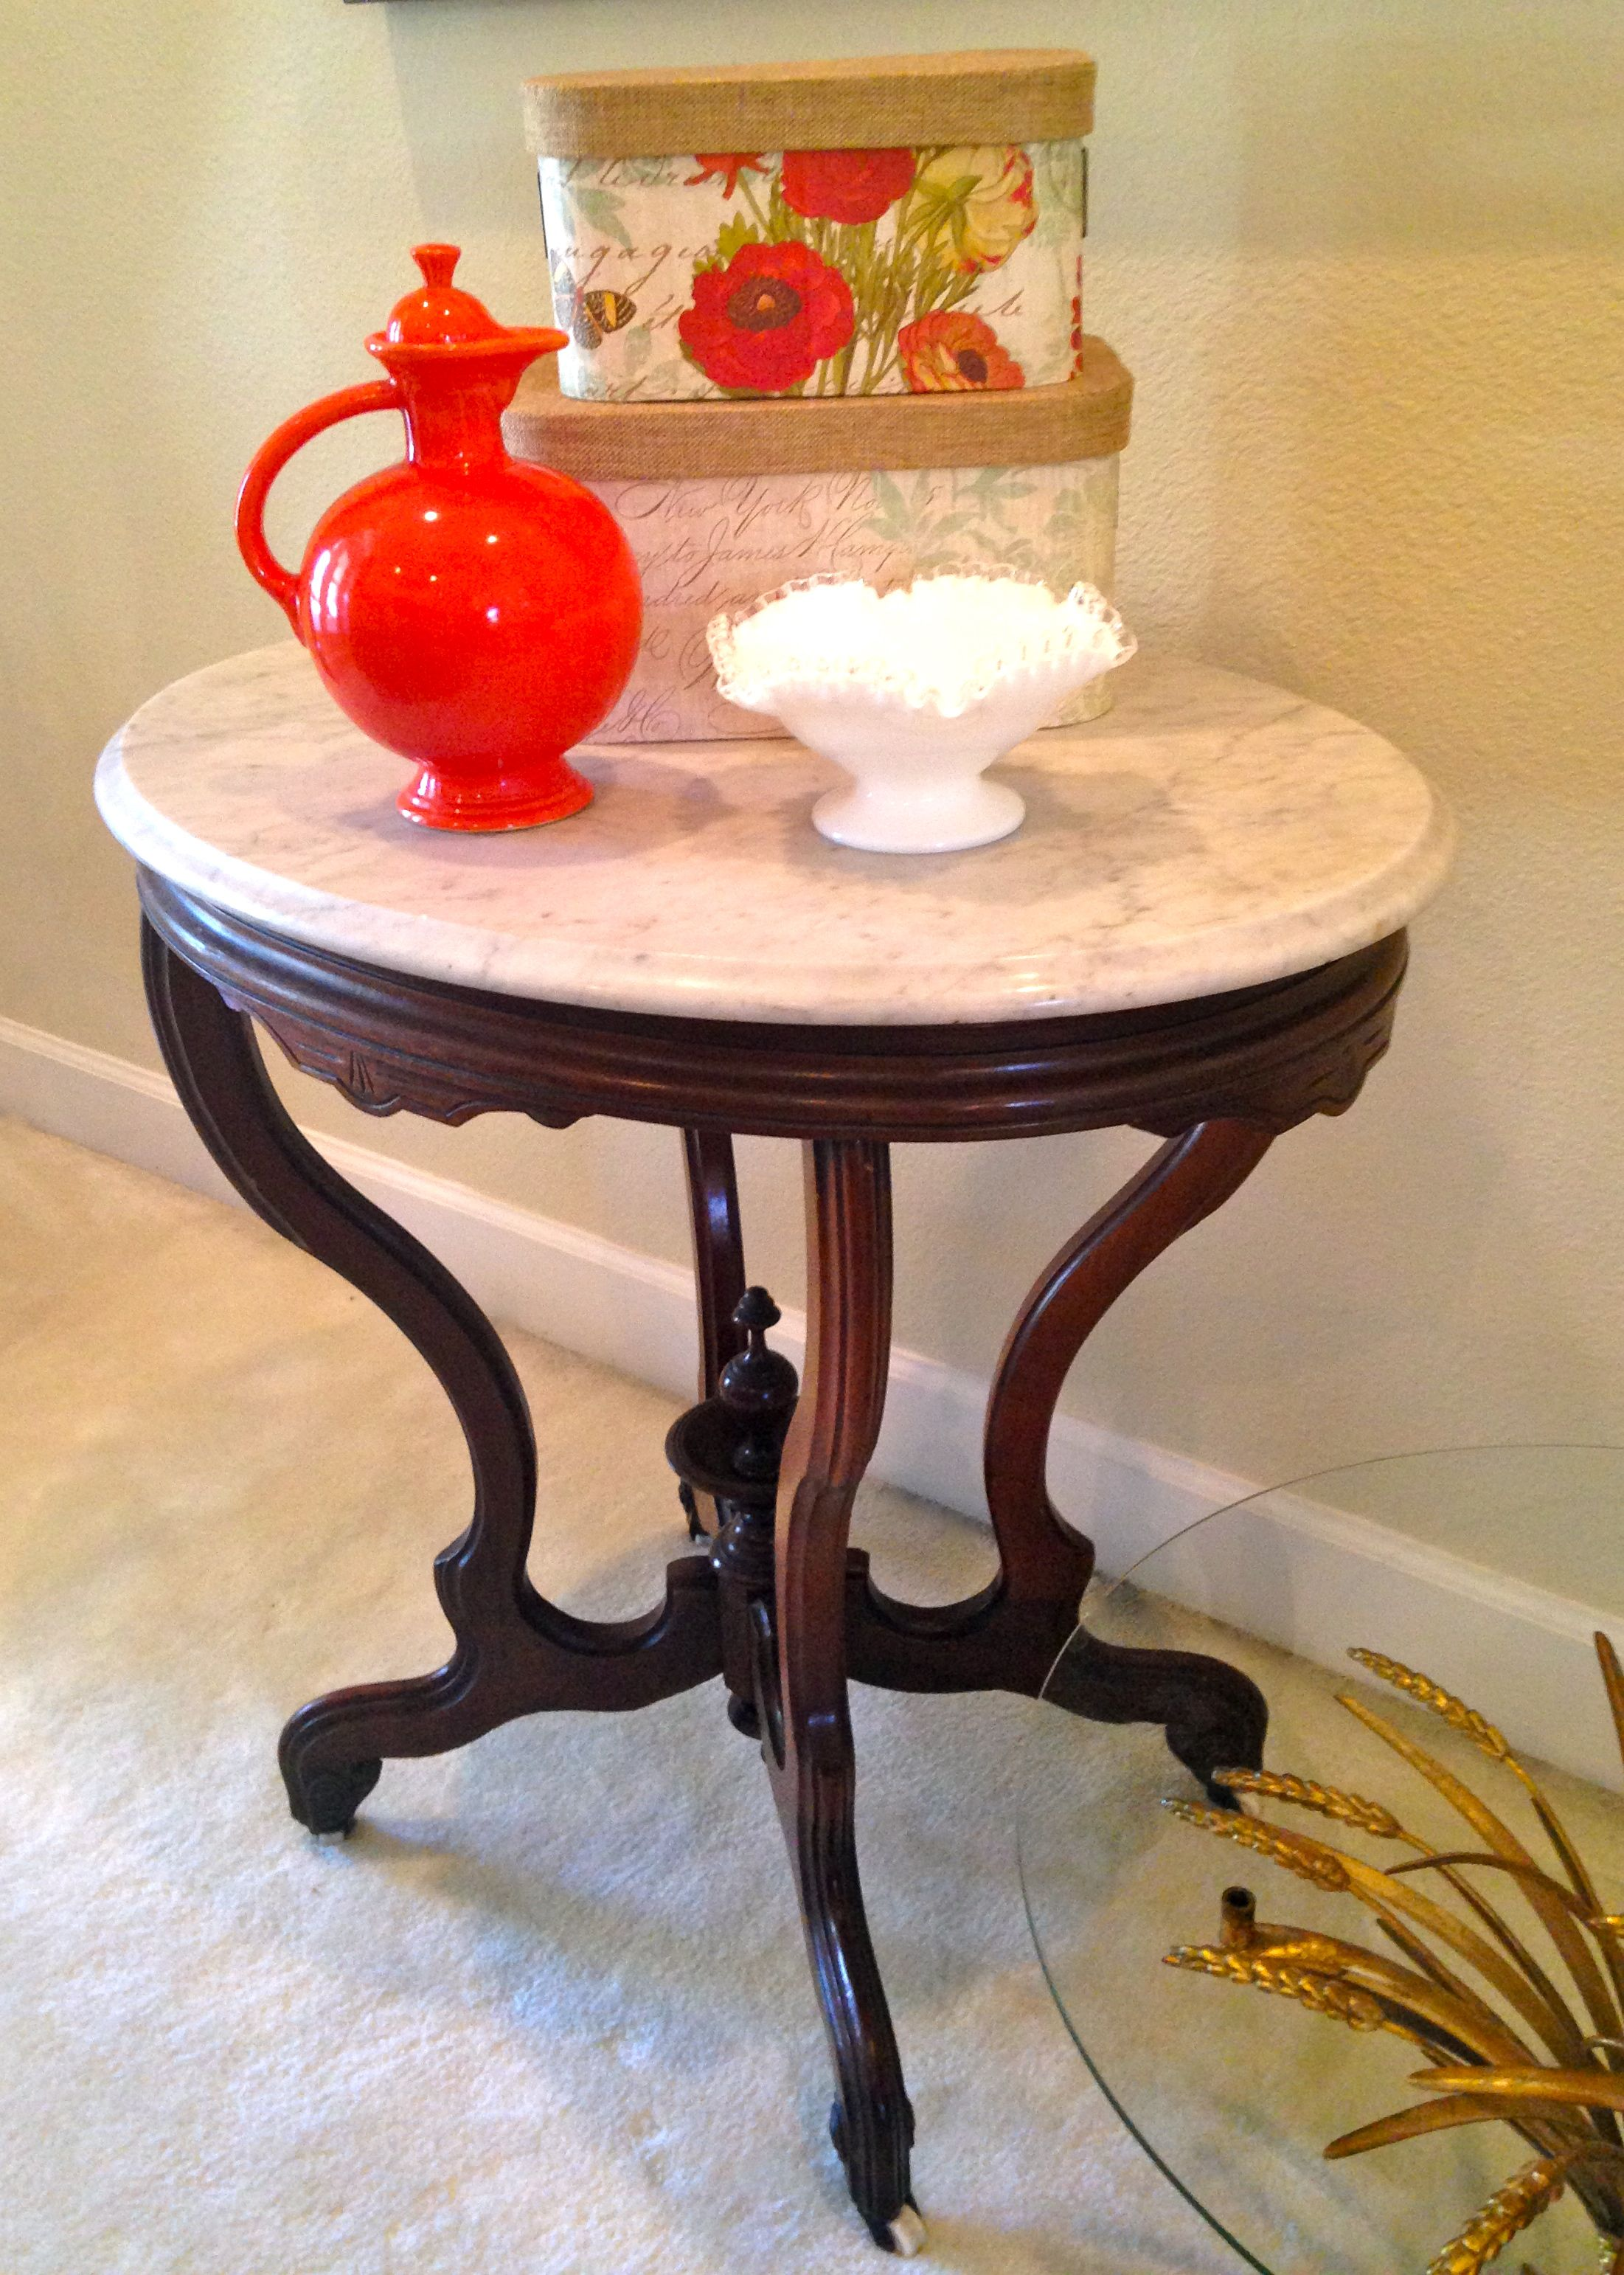 antique marble top table with ceramic wheels 259 sold - Marble Top Table